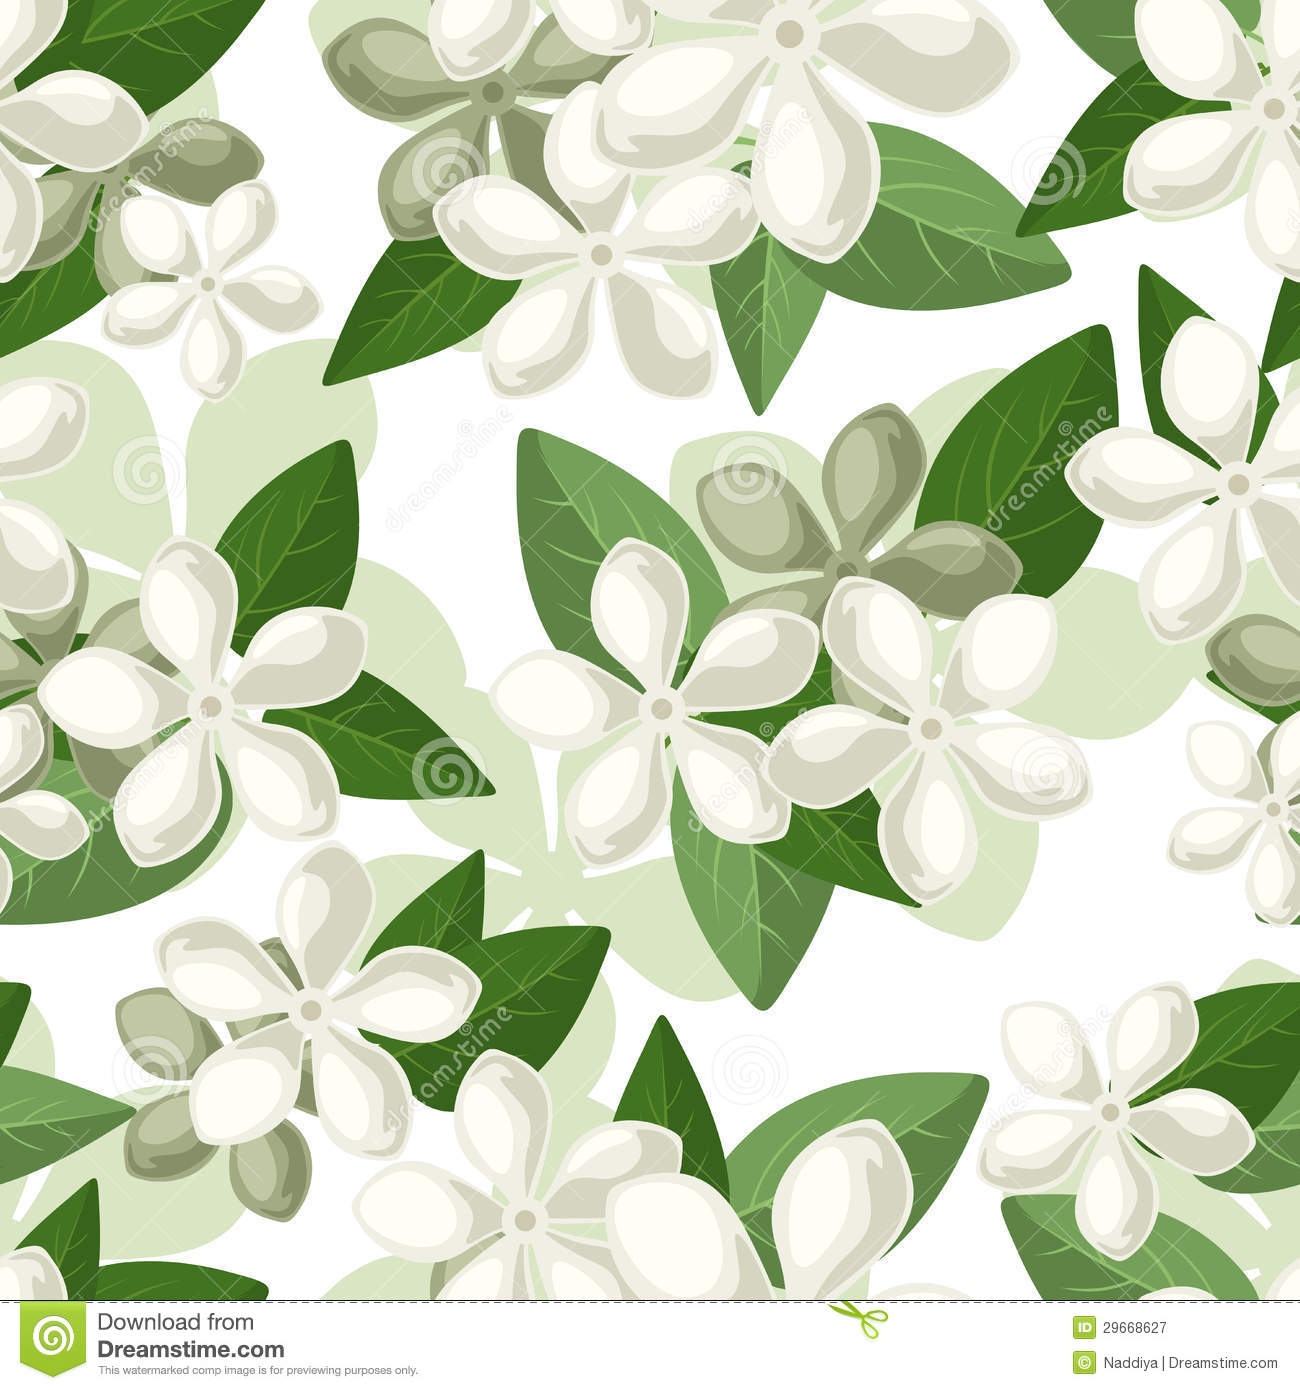 Vector seamless background with white flowers.